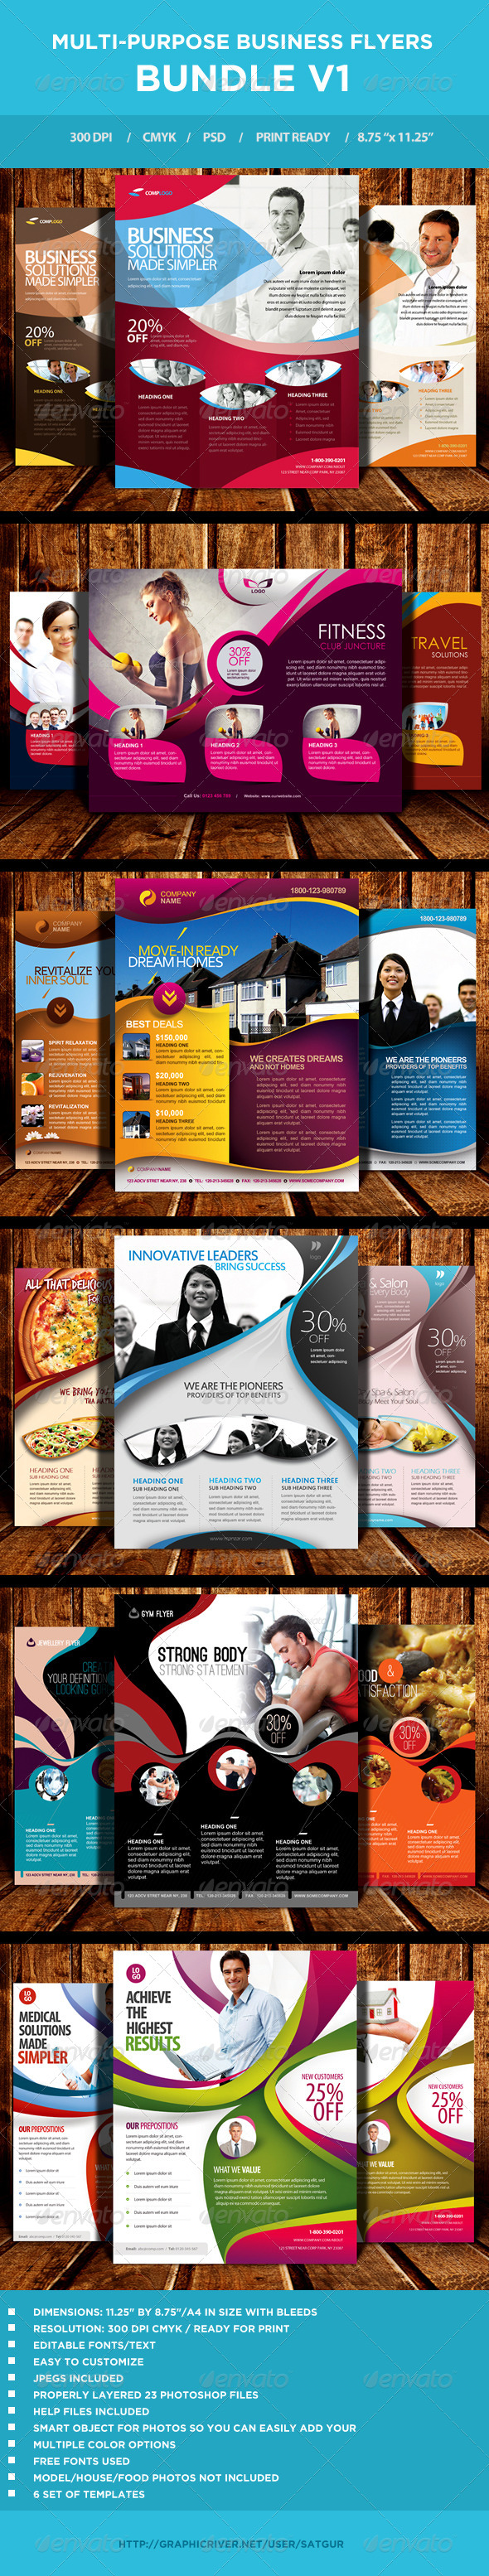 Multi-purpose Business Flyers Bundle V1 - Corporate Flyers